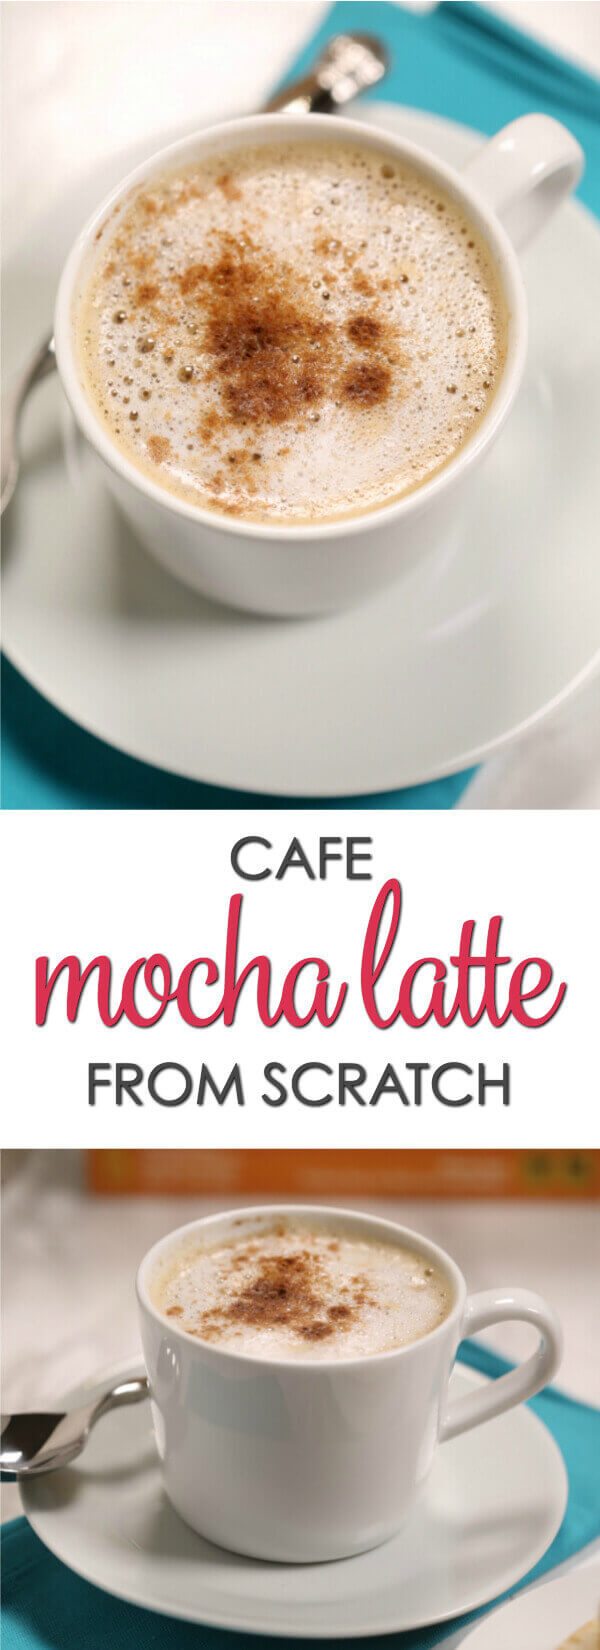 This is one of my all-time favorite Mocha Latte recipes with strong coffee, chocolate and steamed milk that is easy to make without any special equipment. #EasyRecipe #Coffee #CoffeeLovers